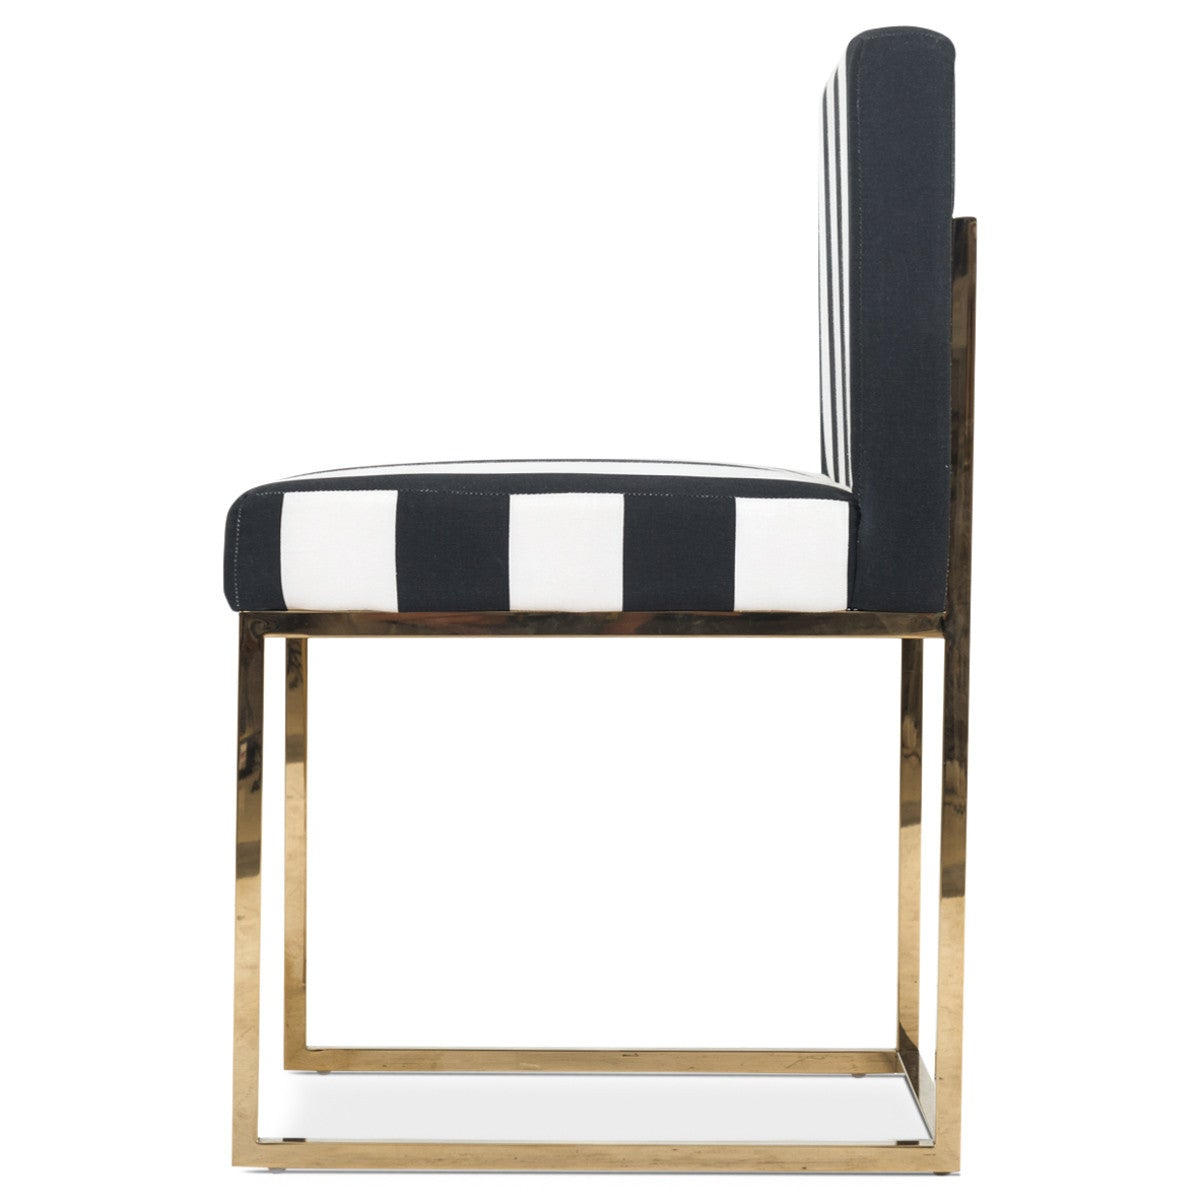 Super Modern Black And White Striped Dining Chair Modshop Ibusinesslaw Wood Chair Design Ideas Ibusinesslaworg